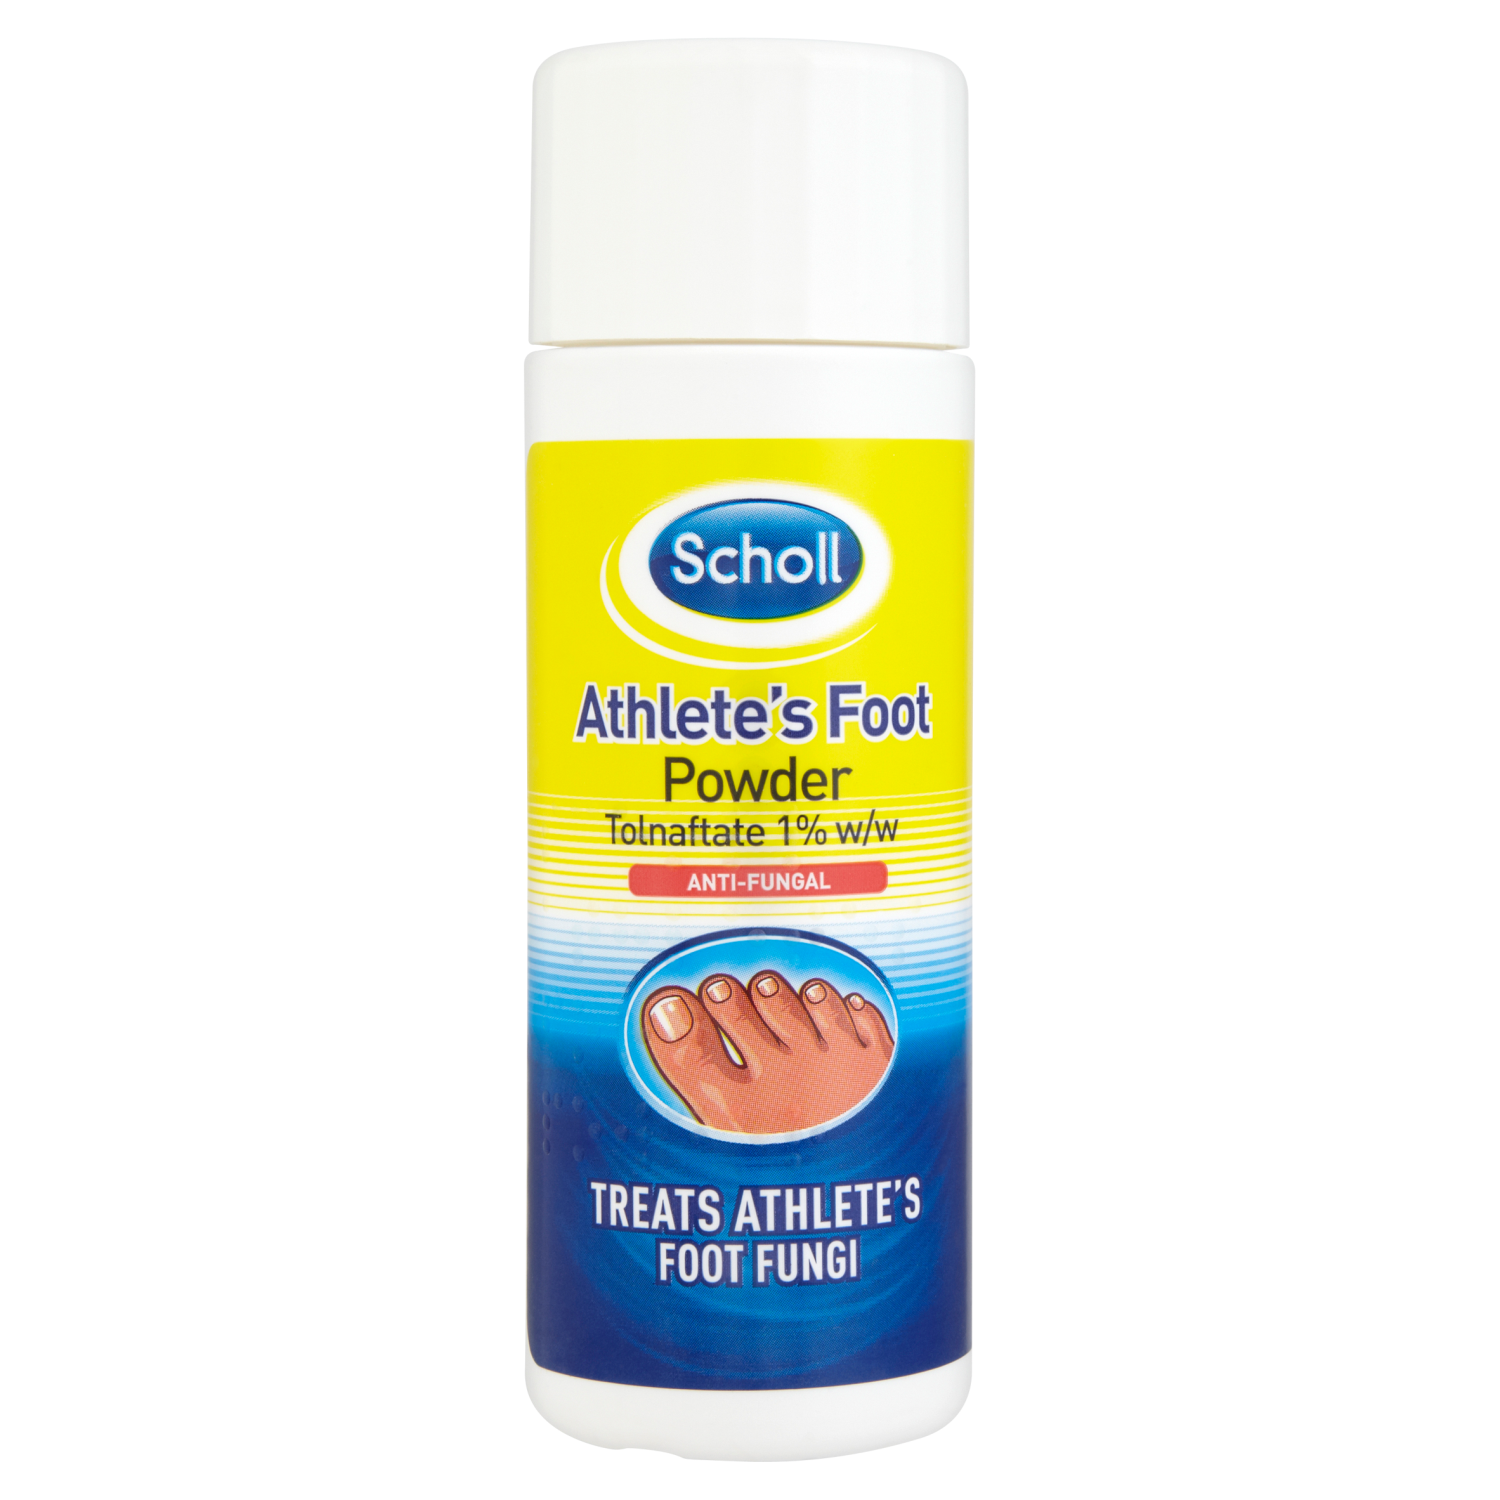 Scholl Athlete's Foot Powder Tolnaftate 1%w/w